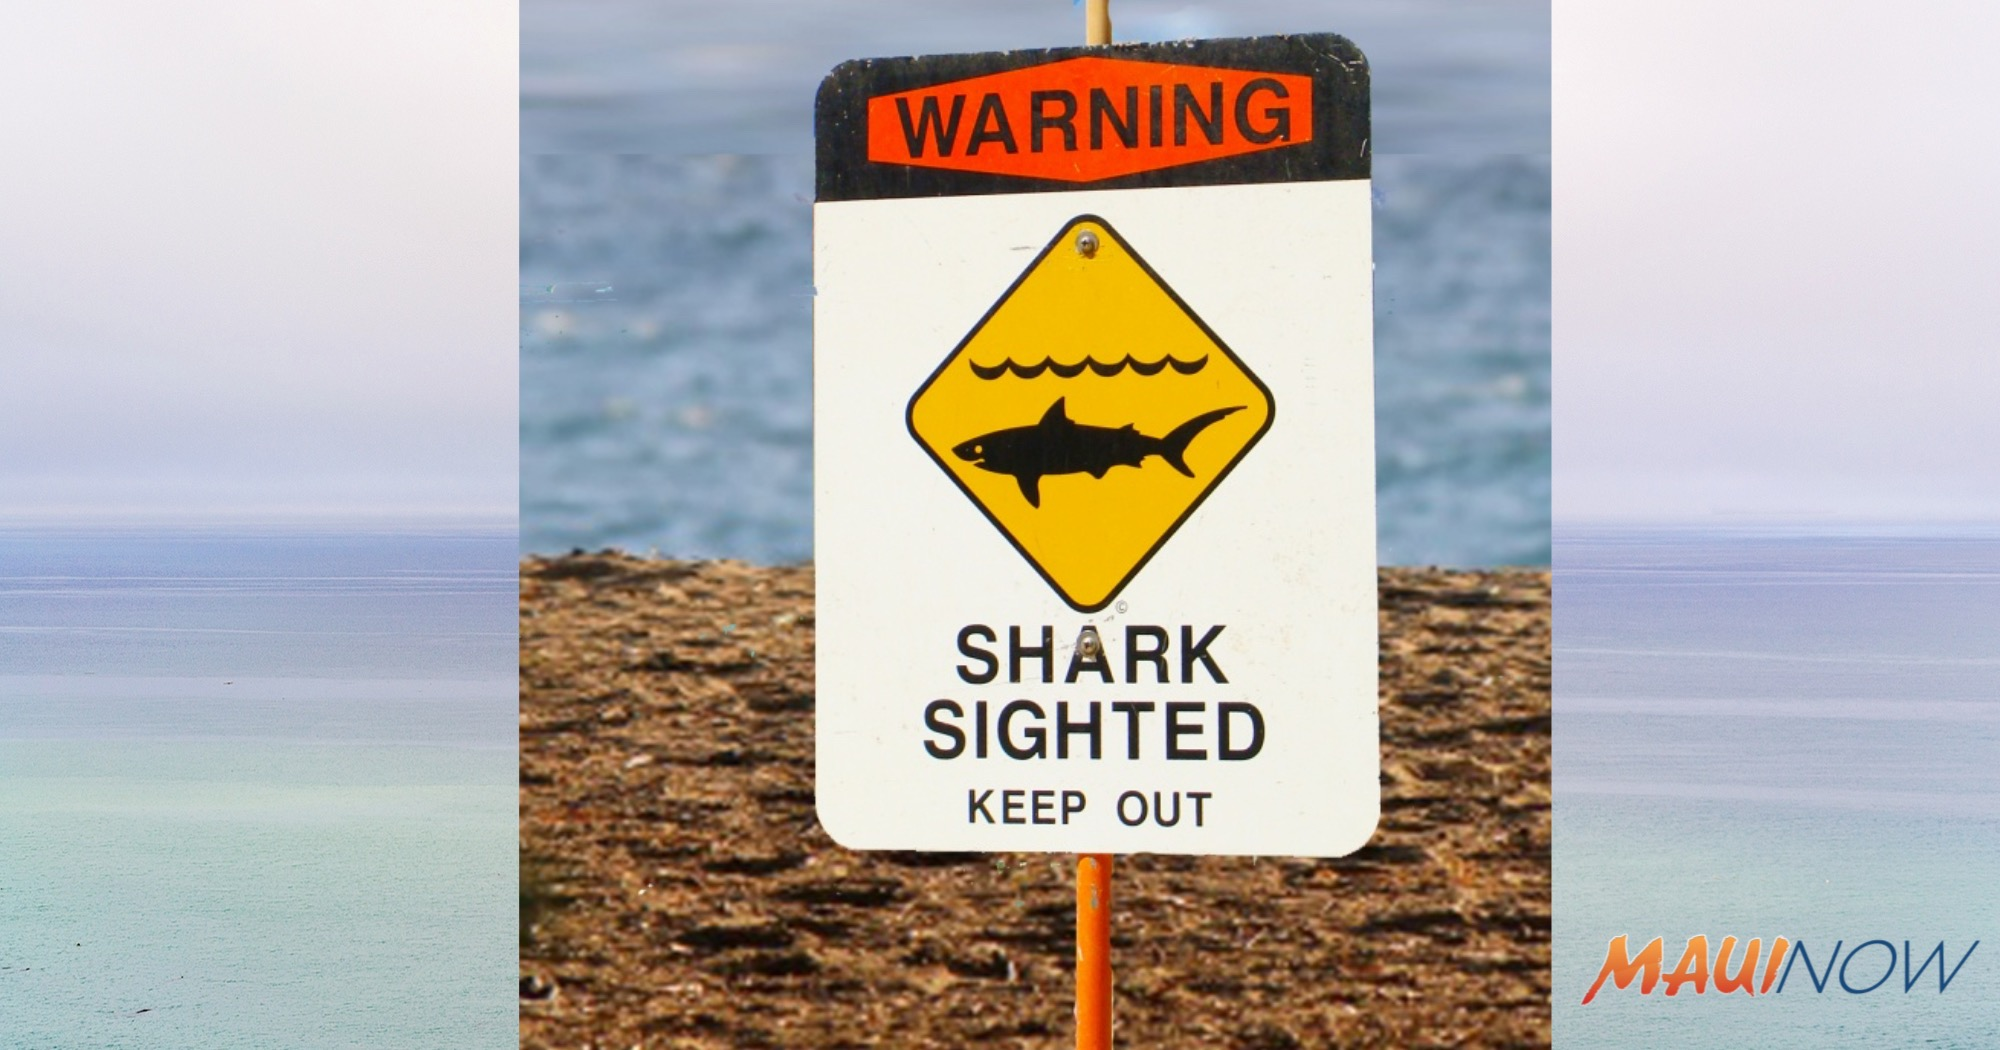 Experts: Shark in Hawaii Island Incident Likely Galapagos